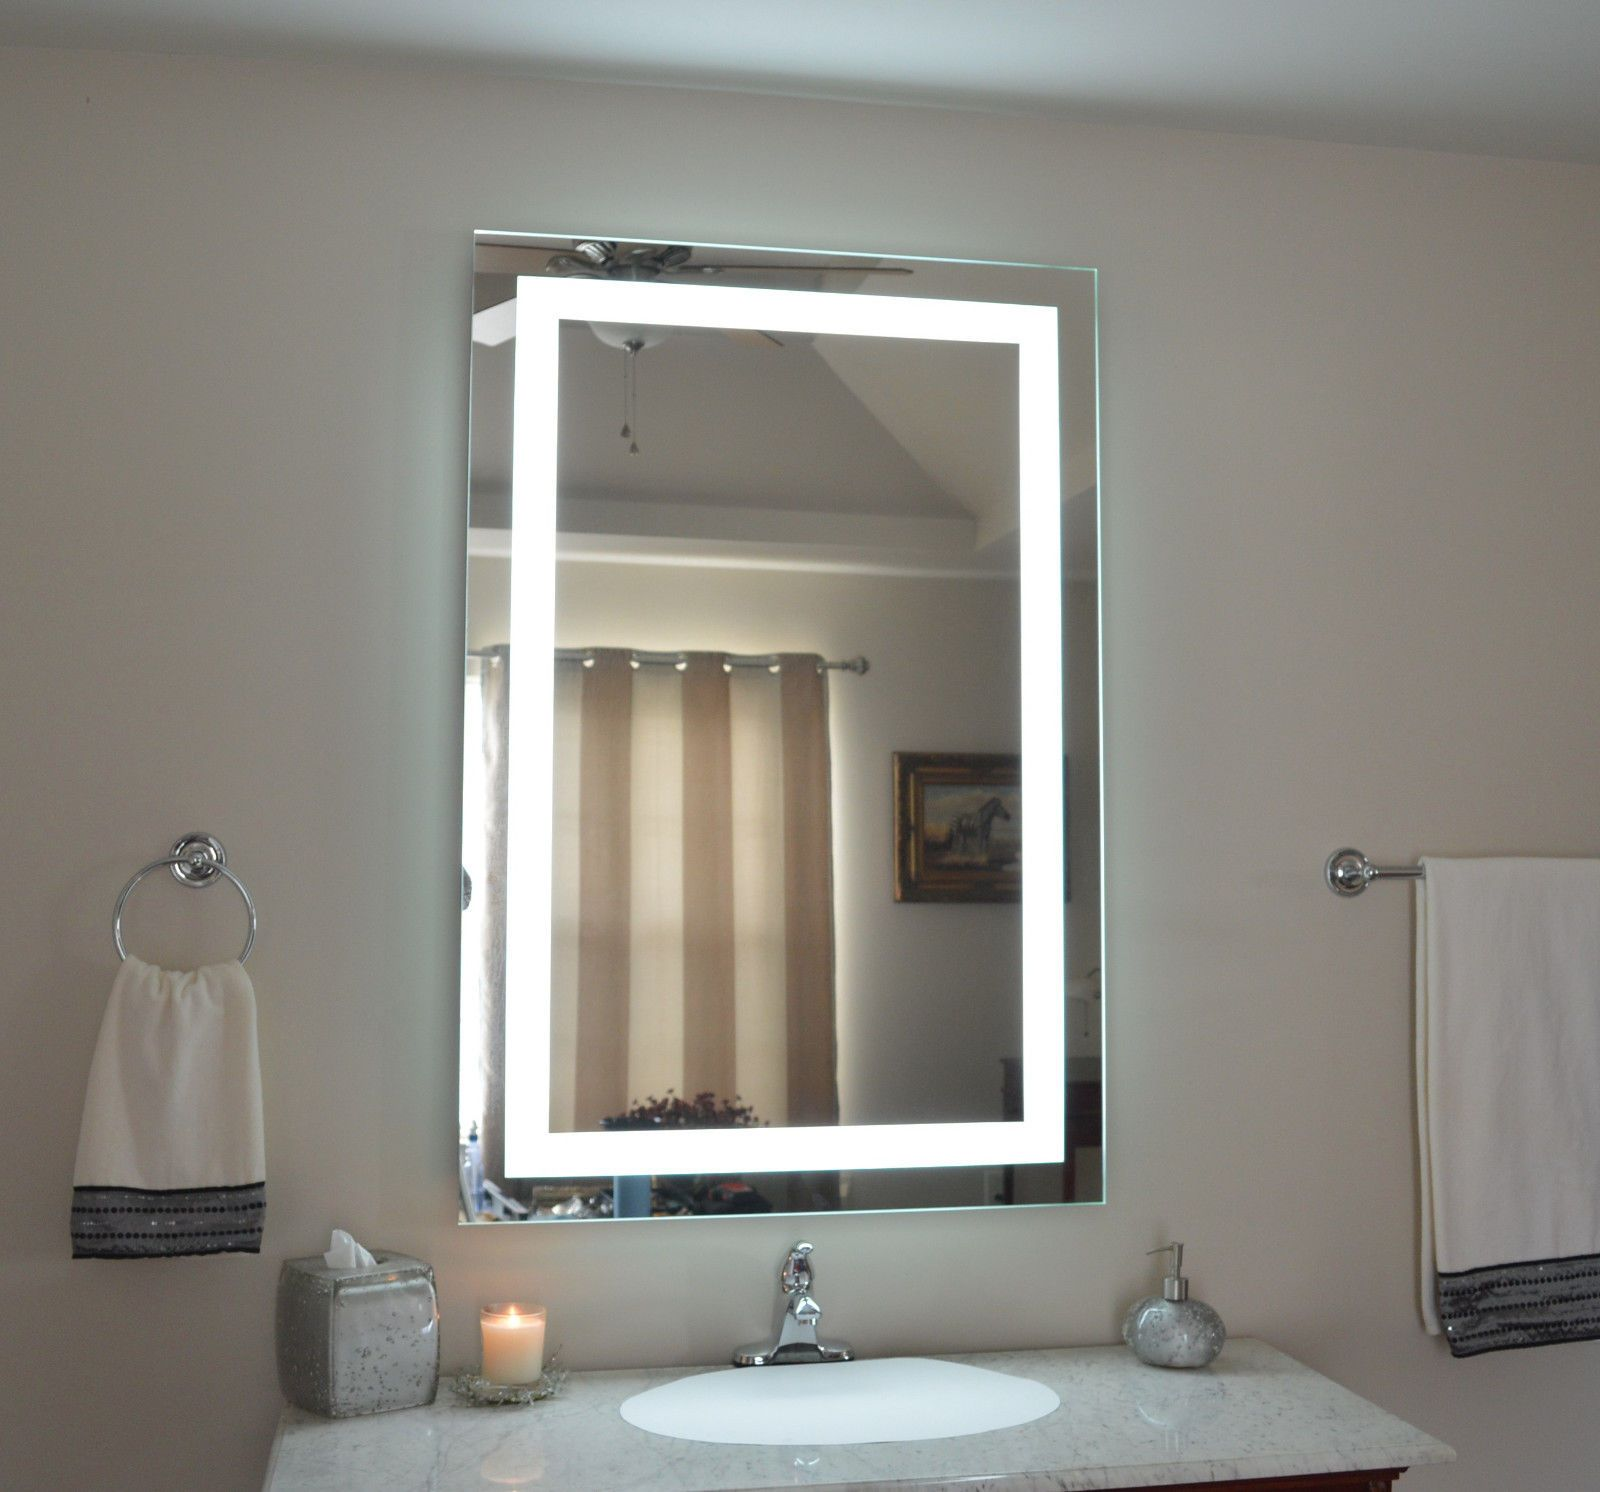 Photos Of MAM w x t lighted vanity mirror wall mounted LED makeup mirror